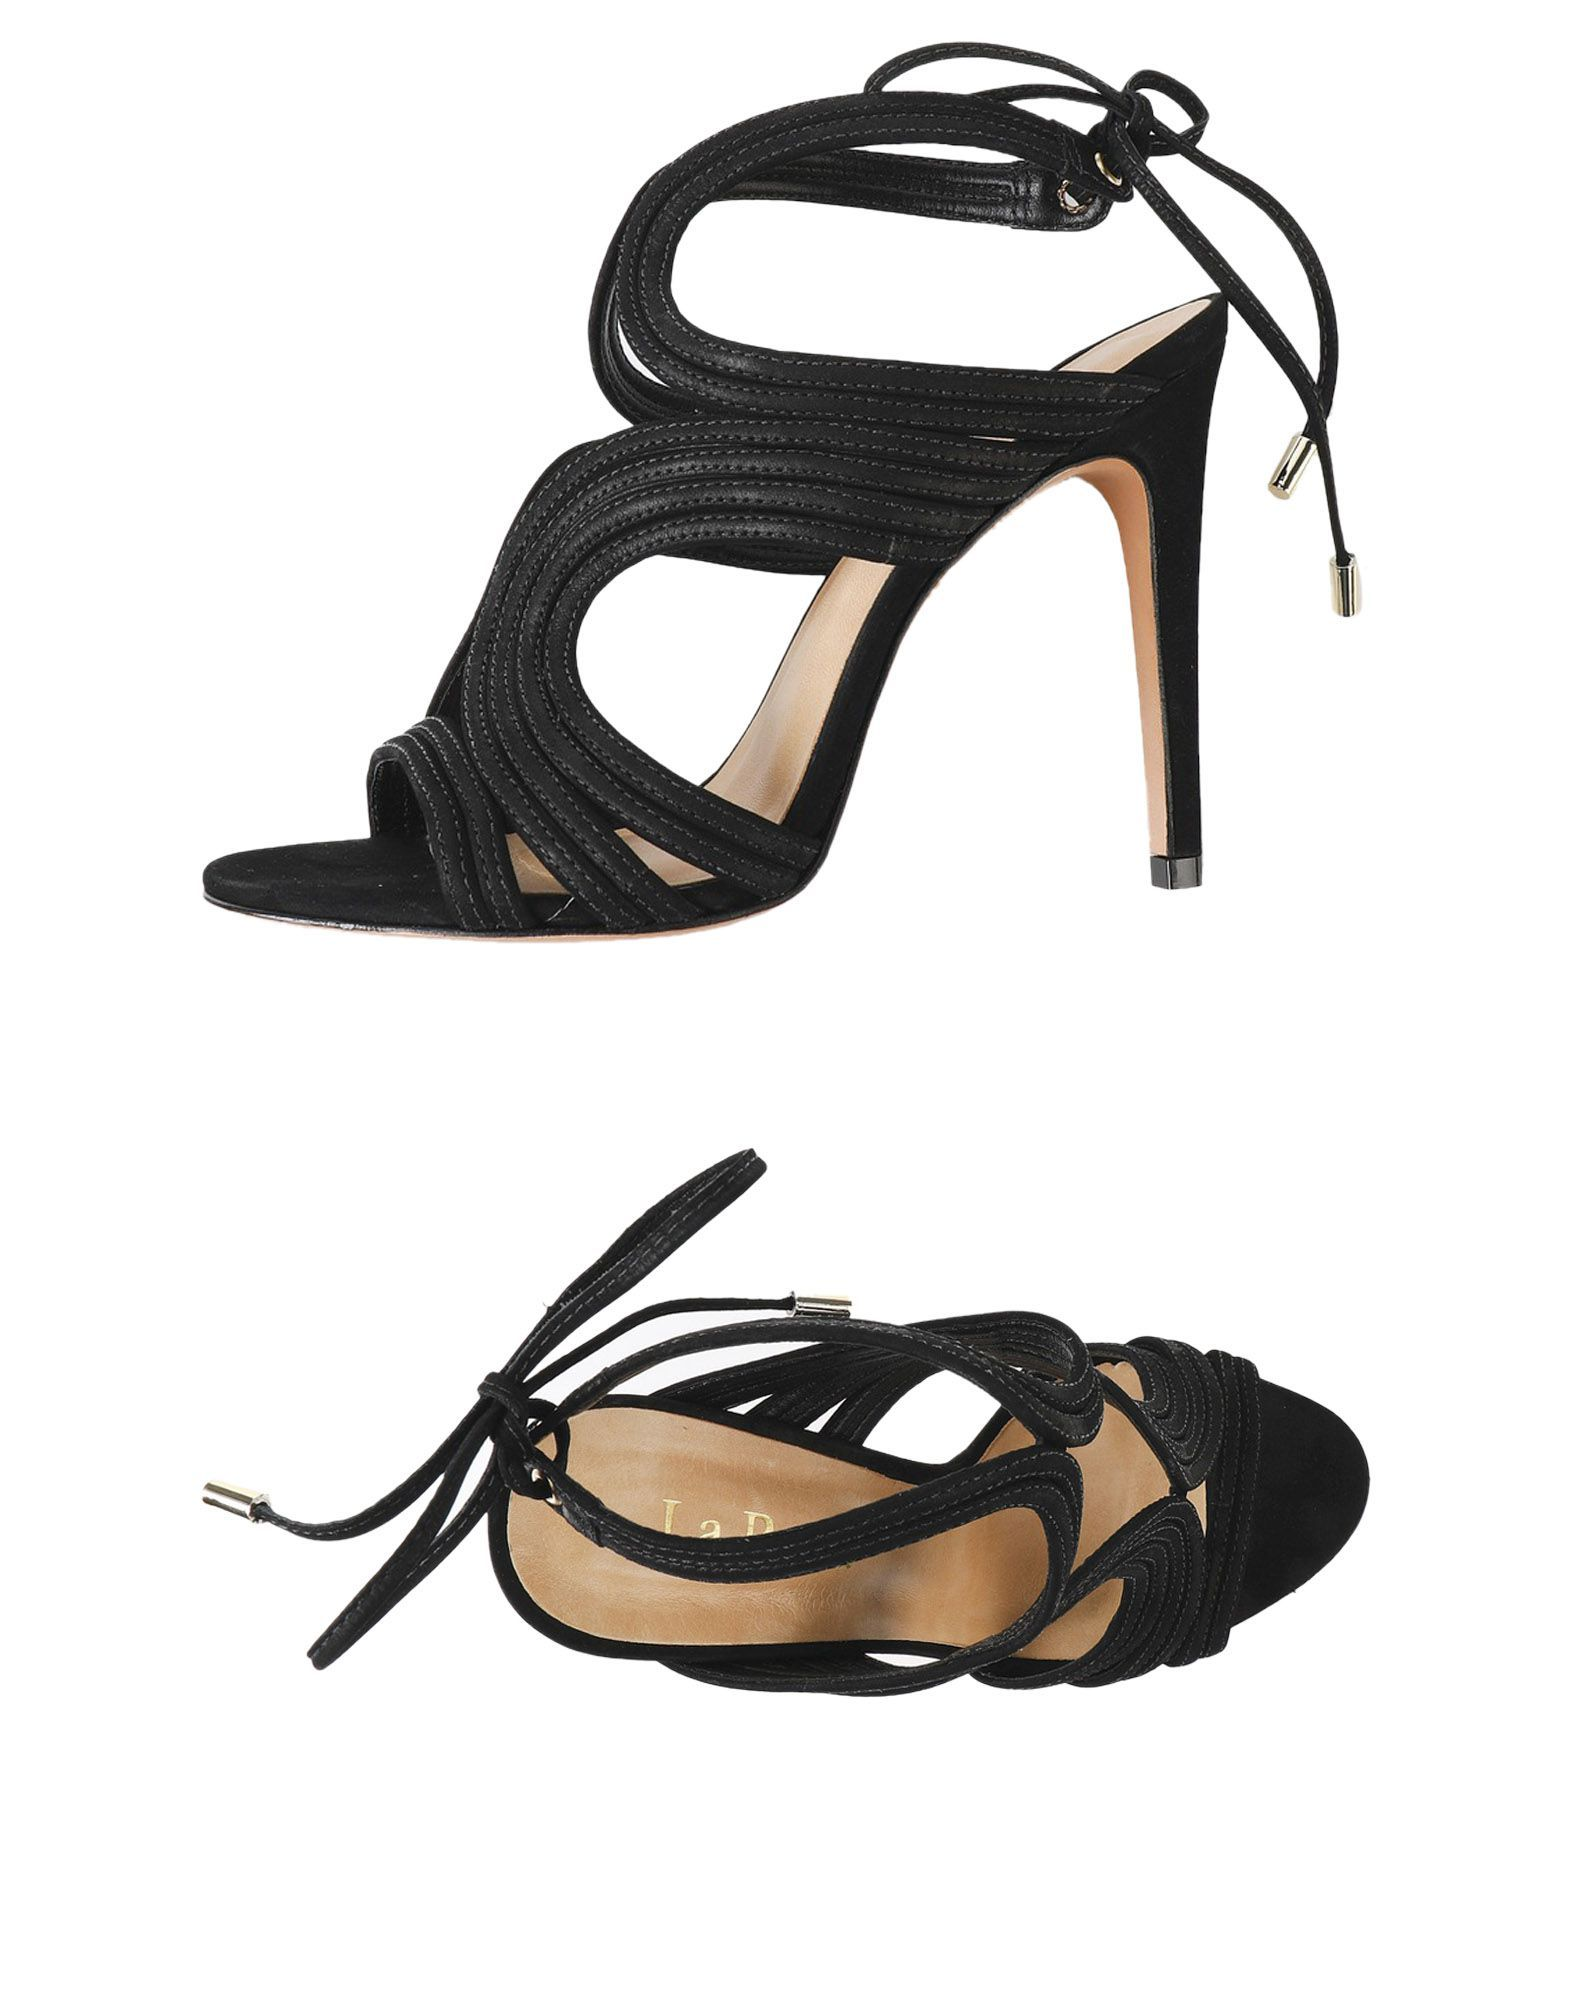 La Perla Black Leather Heeled Sandals